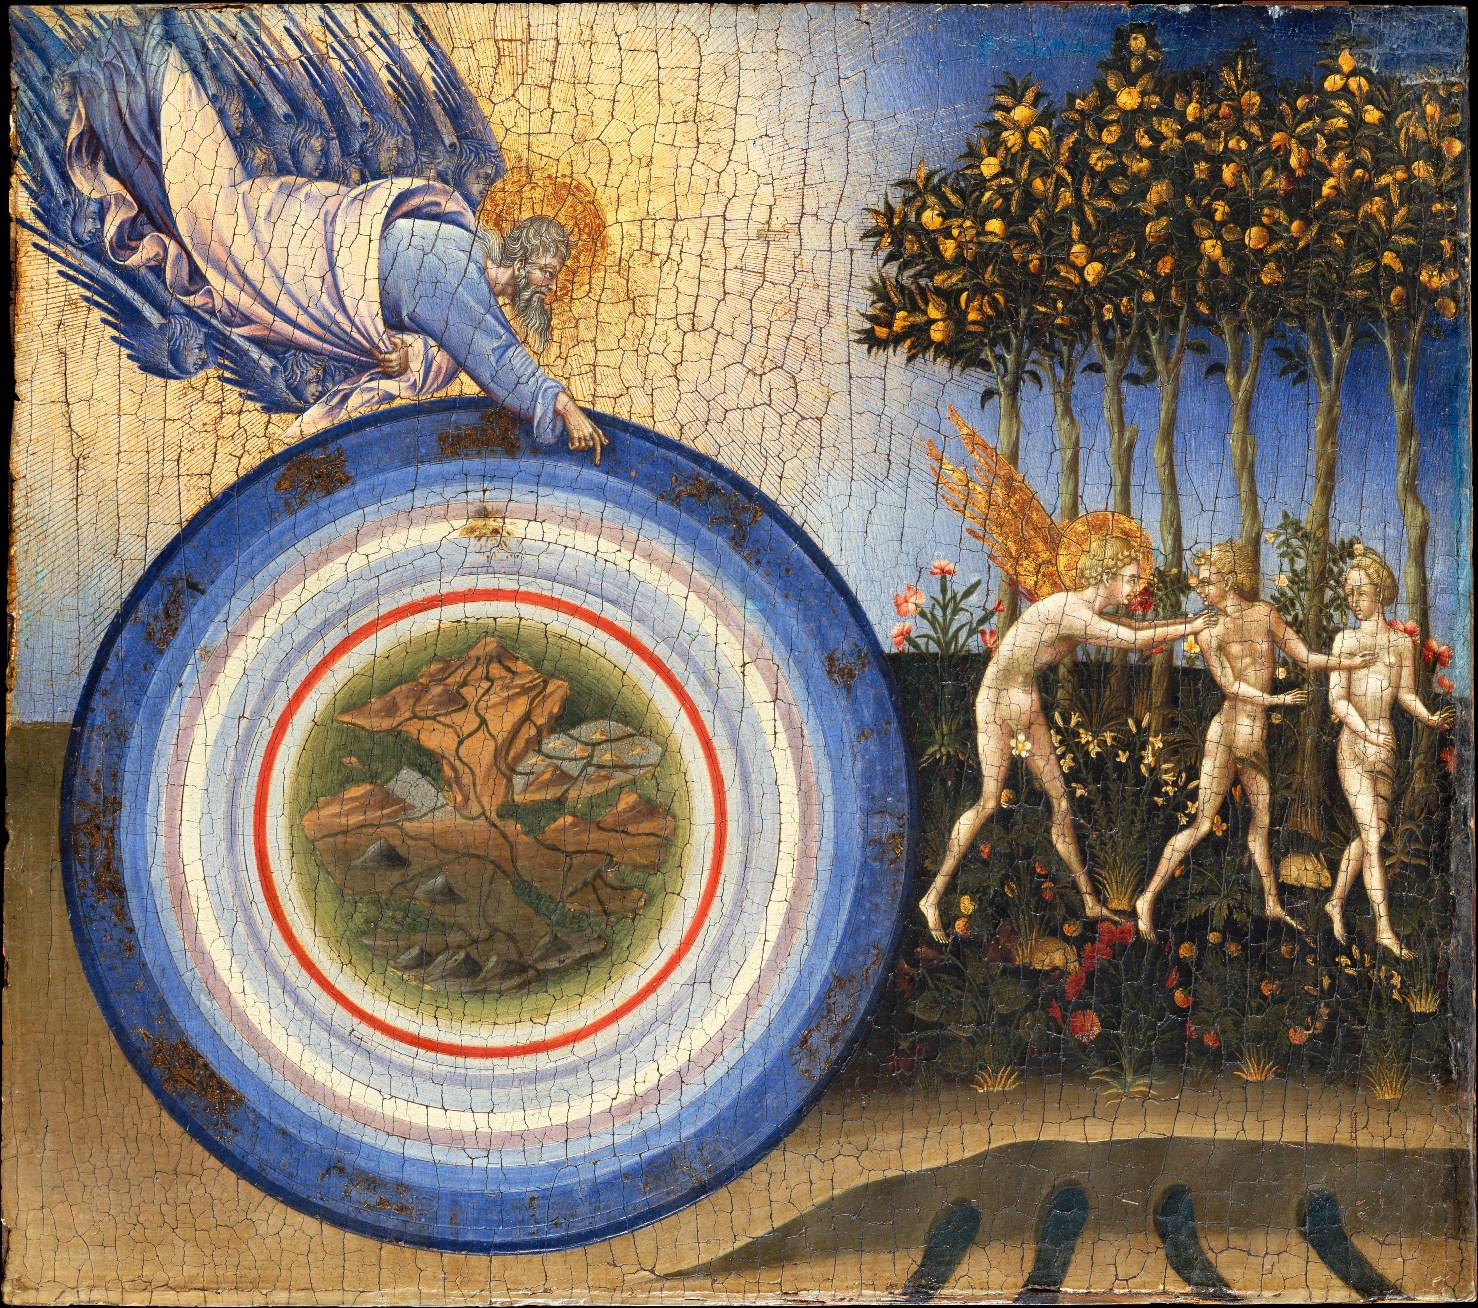 giovanni-di-paolo-creation-and-the-expulsion-from-the-paradise-1445c.jpg